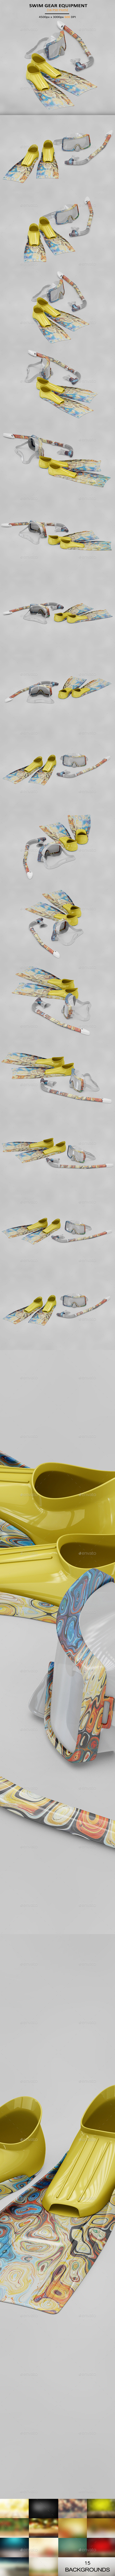 GraphicRiver Swim Gear Equipment MockUp 20666589